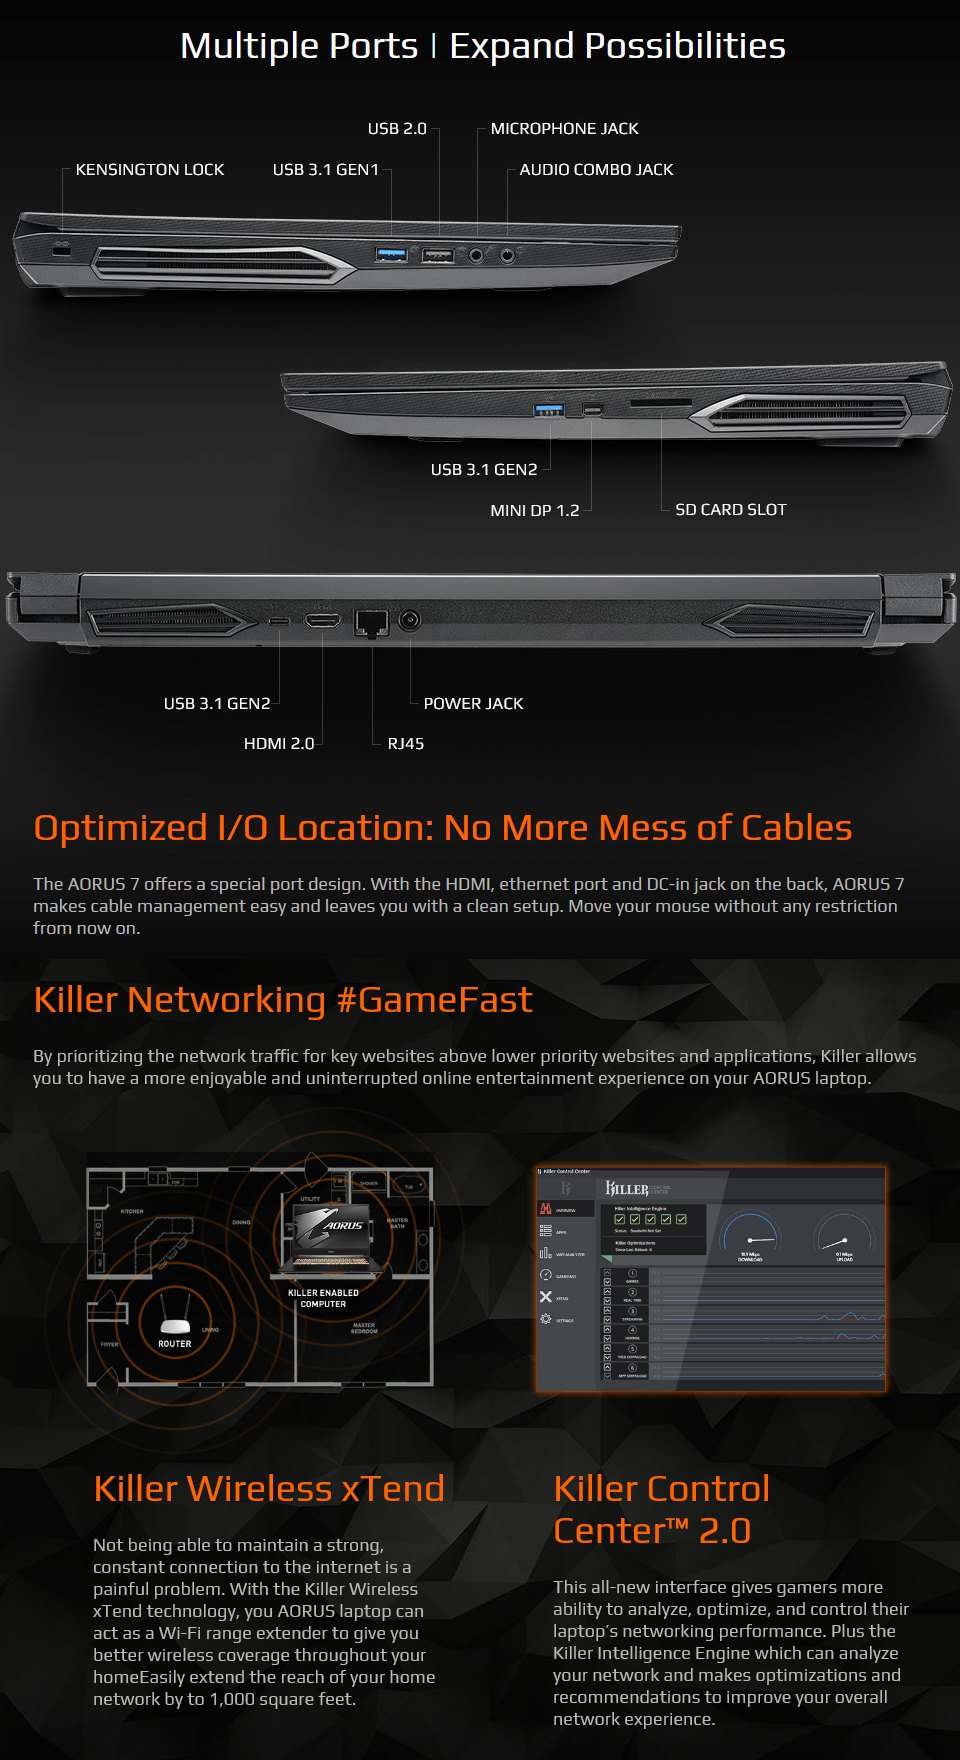 Gigabyte AORUS 7 Core i7 GTX 1660 Ti 17.3in 144Hz Gaming Laptop [SA] features 3